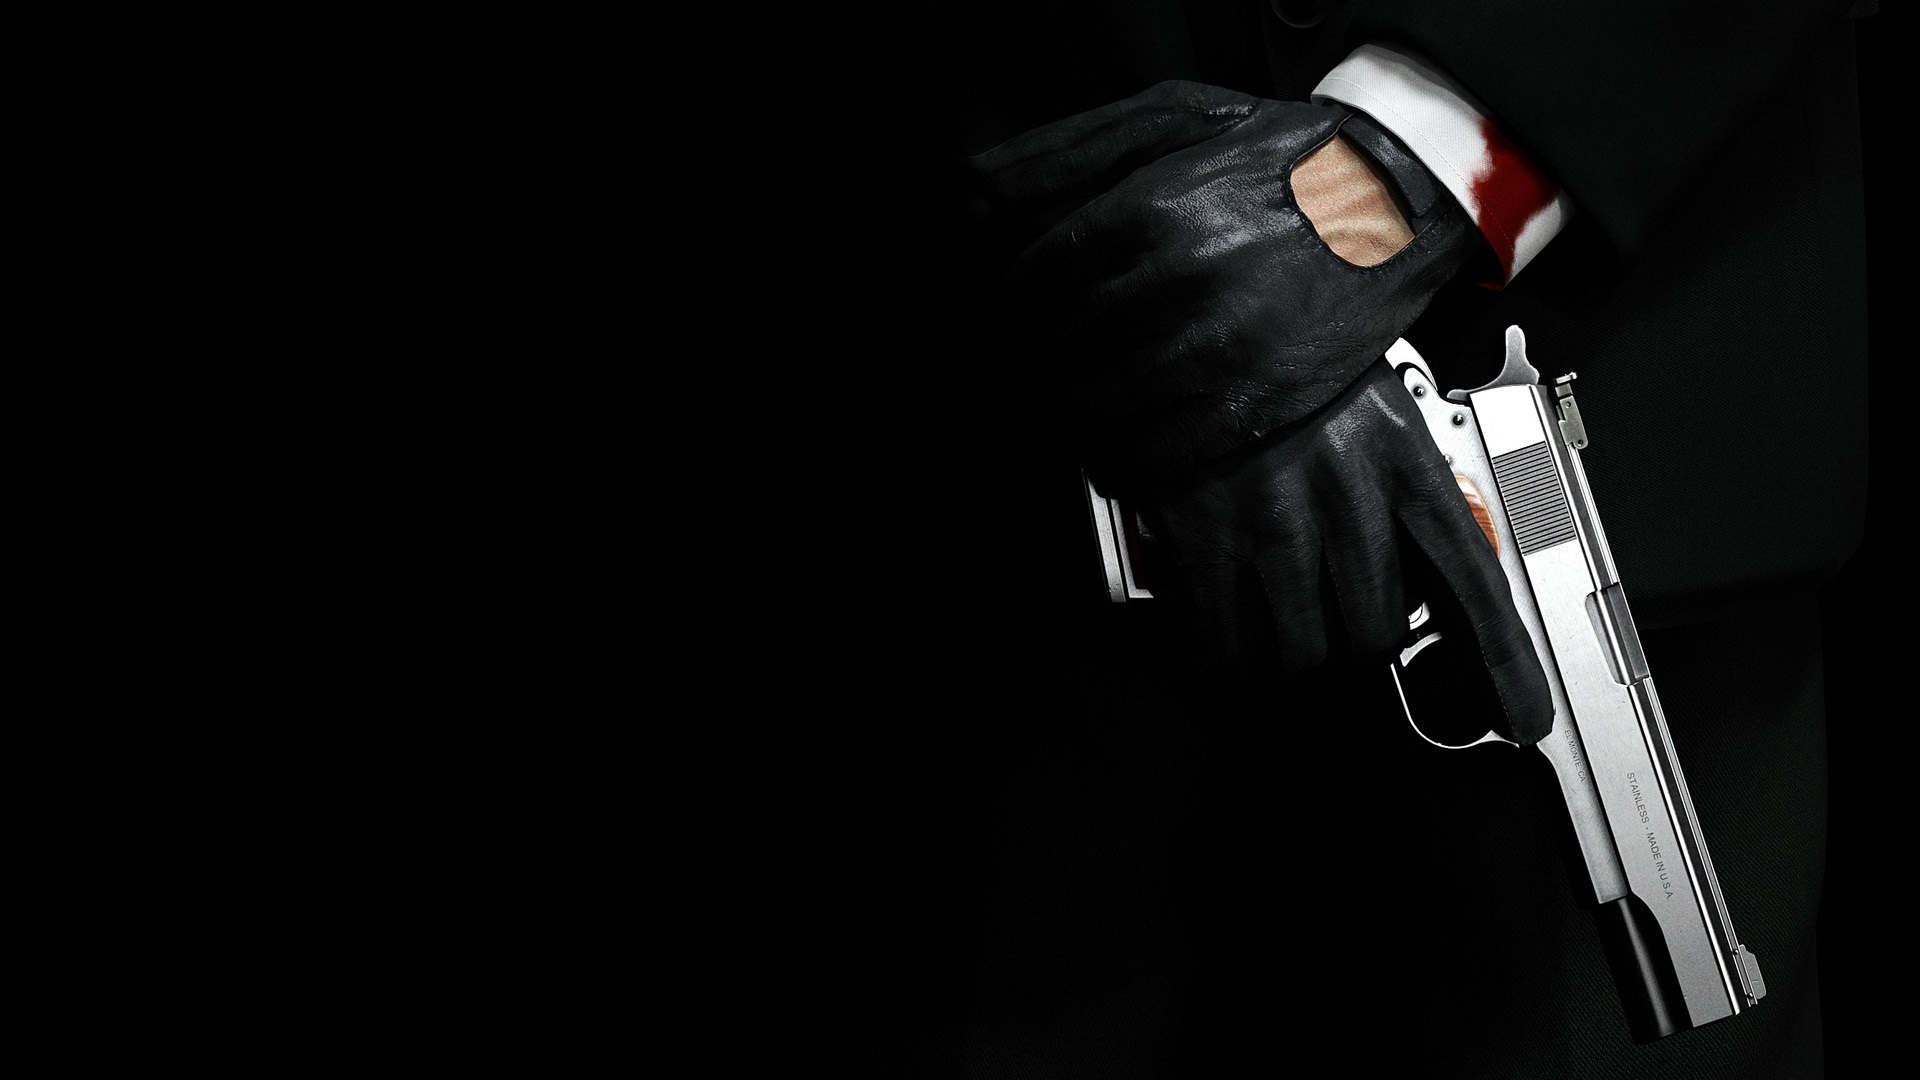 Hitman Computer Wallpapers Desktop Backgrounds 1920x1080